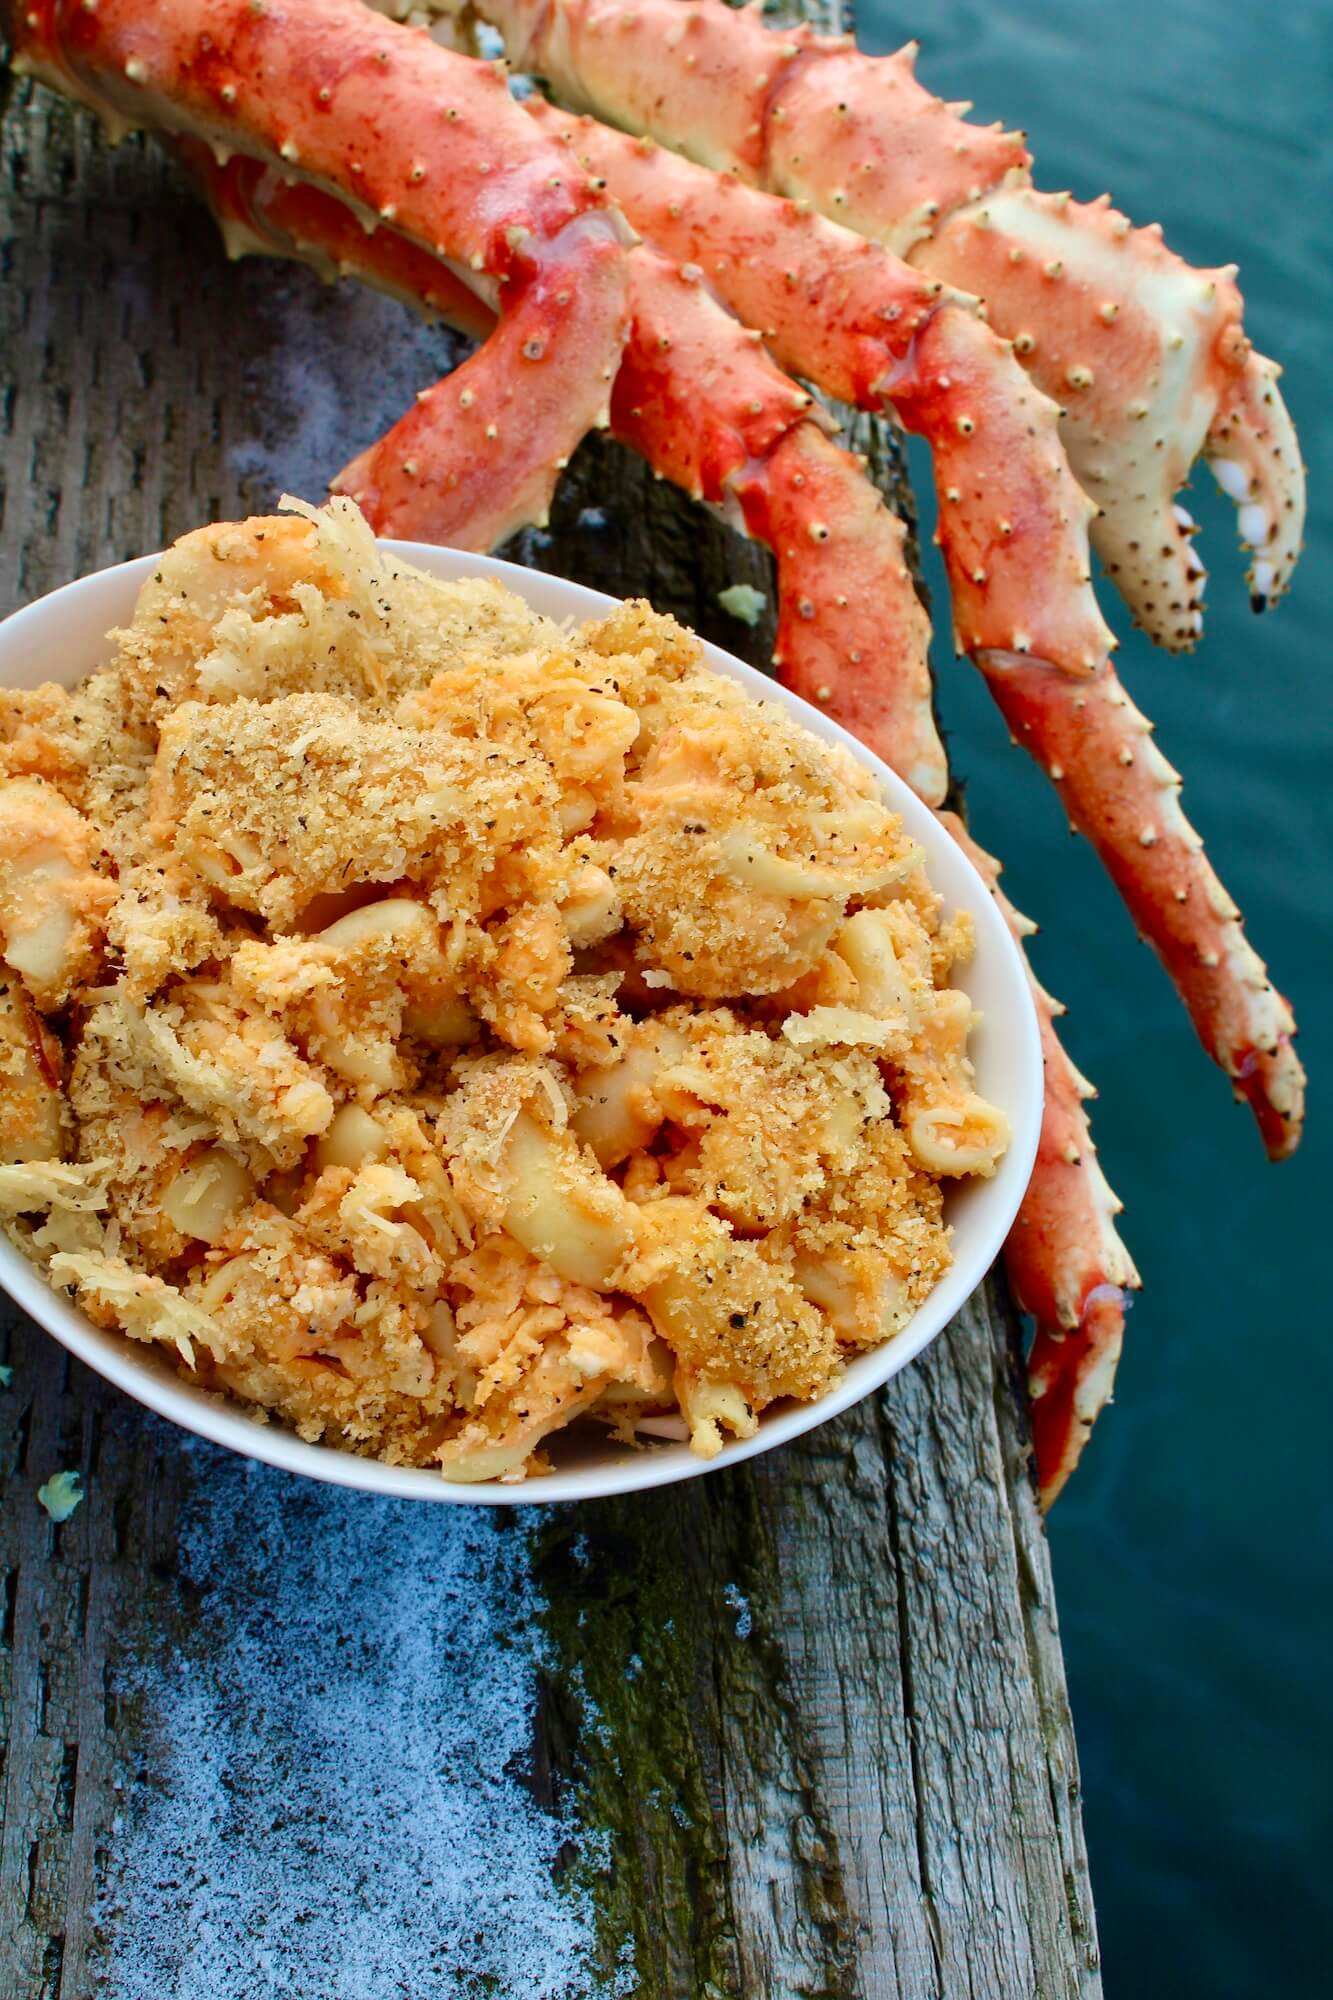 King Crab Claw next to a bowl of King Crab Mac & Cheese